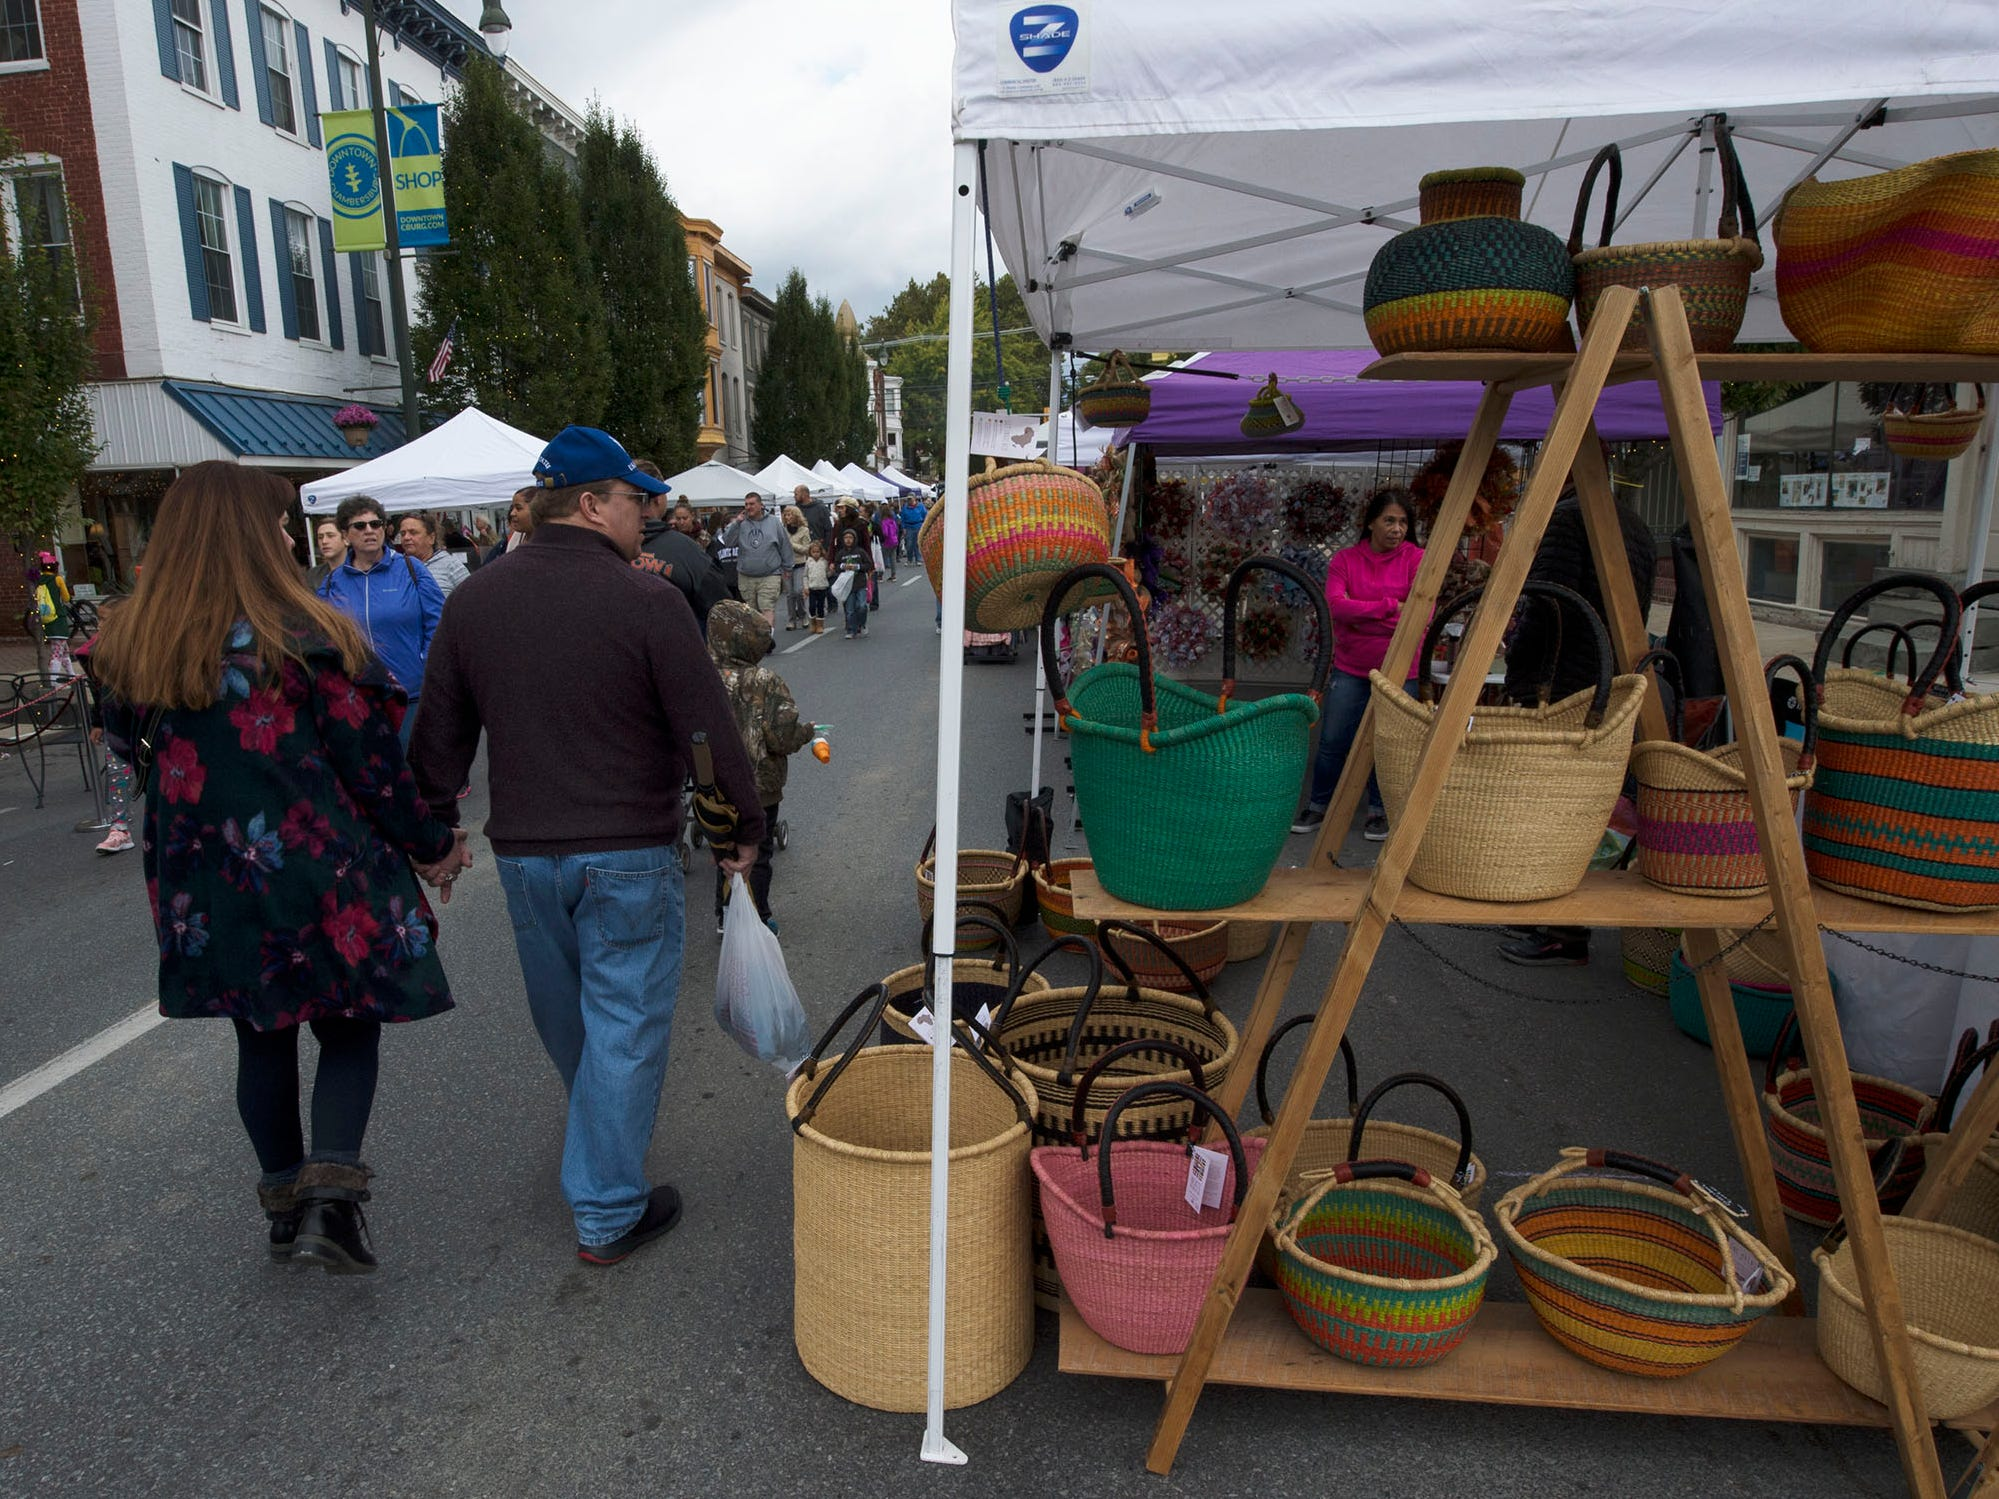 Applefest started Saturday morning October 20, 2018 in downtown Chambersburg.